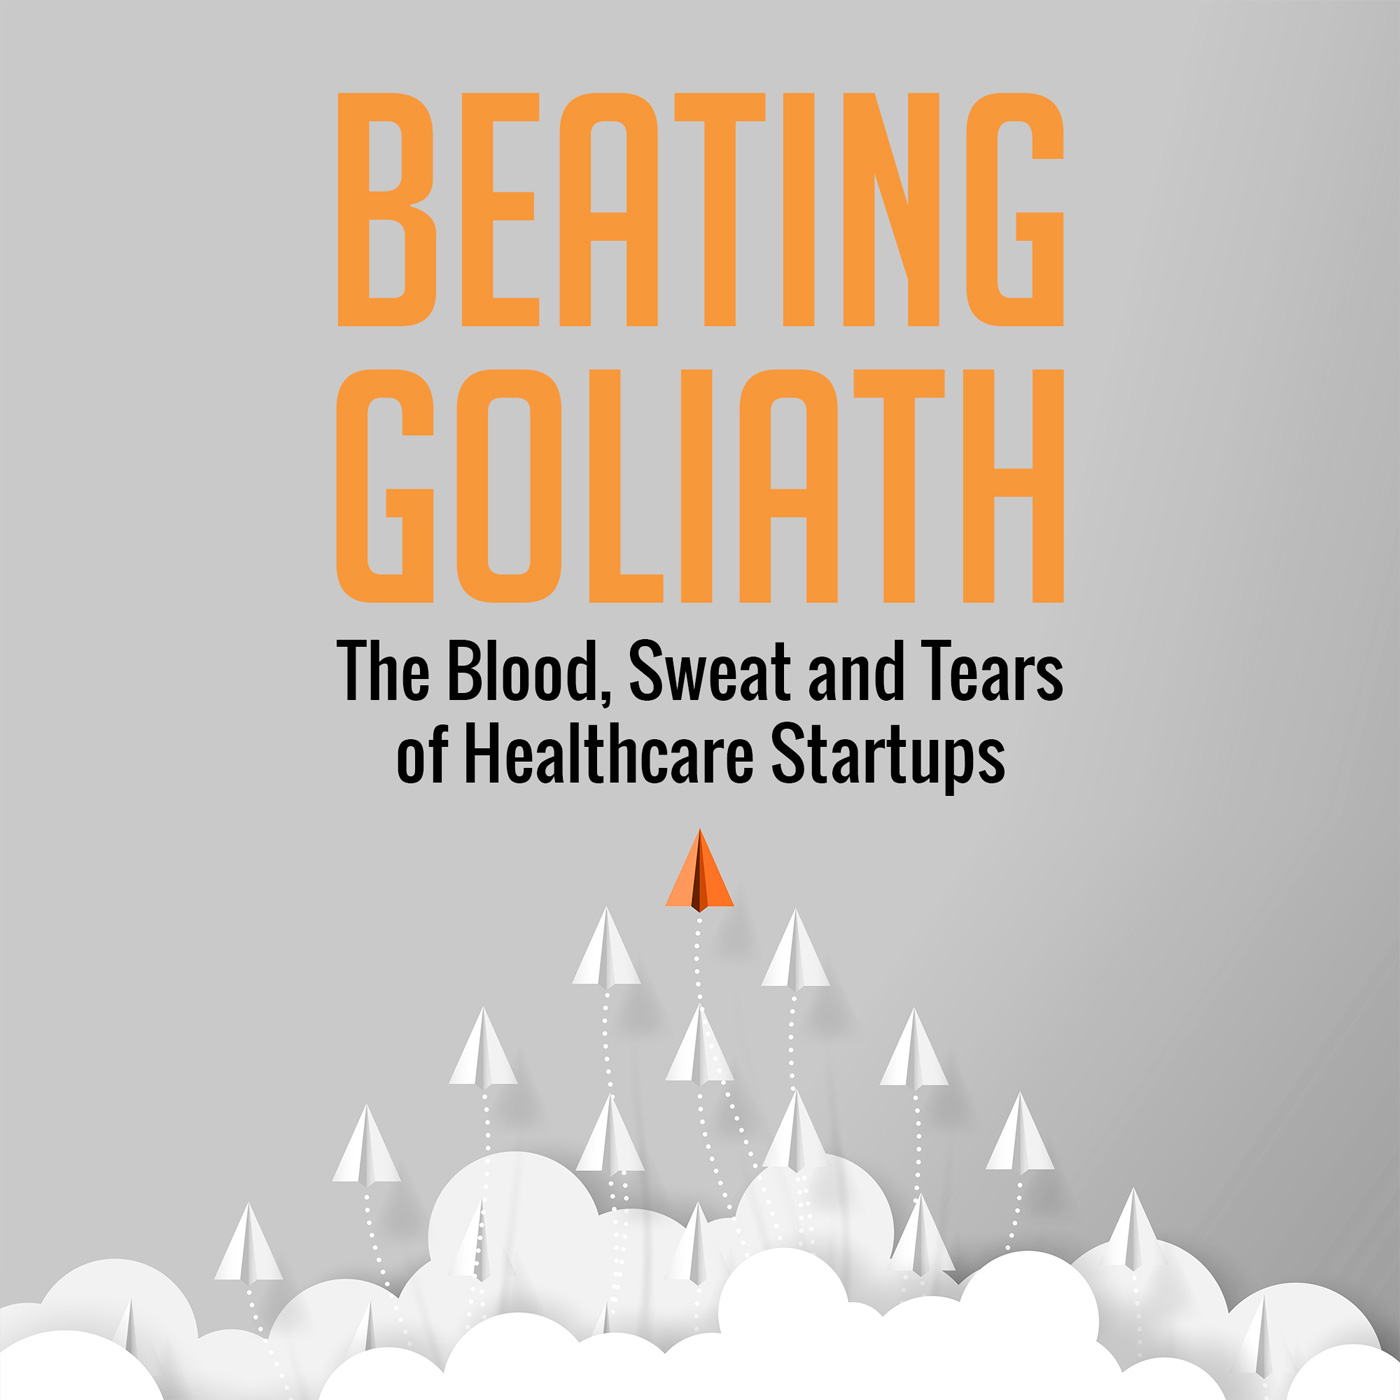 Beating Goliath - The Blood, Sweat and Tears of Healthcare Startups